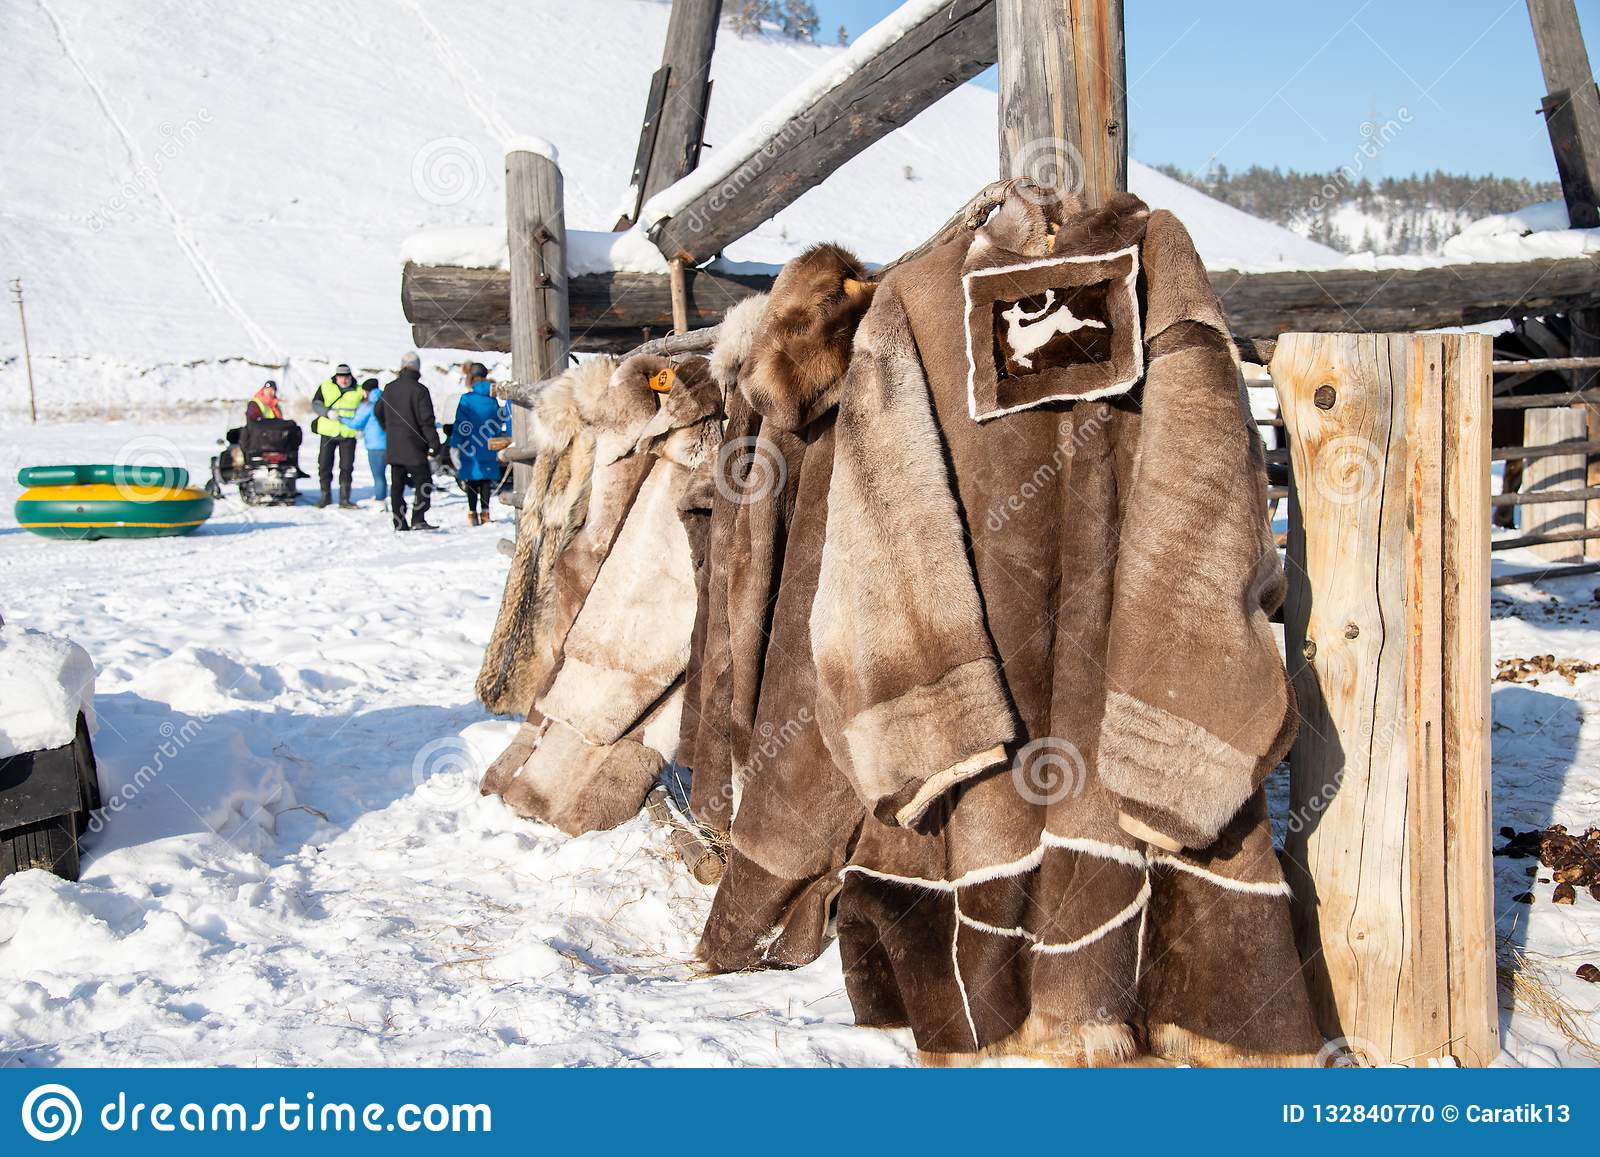 72da97f16dc45 Traditional clothes of the north peoples of Yakutia in Yakutsk, Republic of  Sakha, Russia